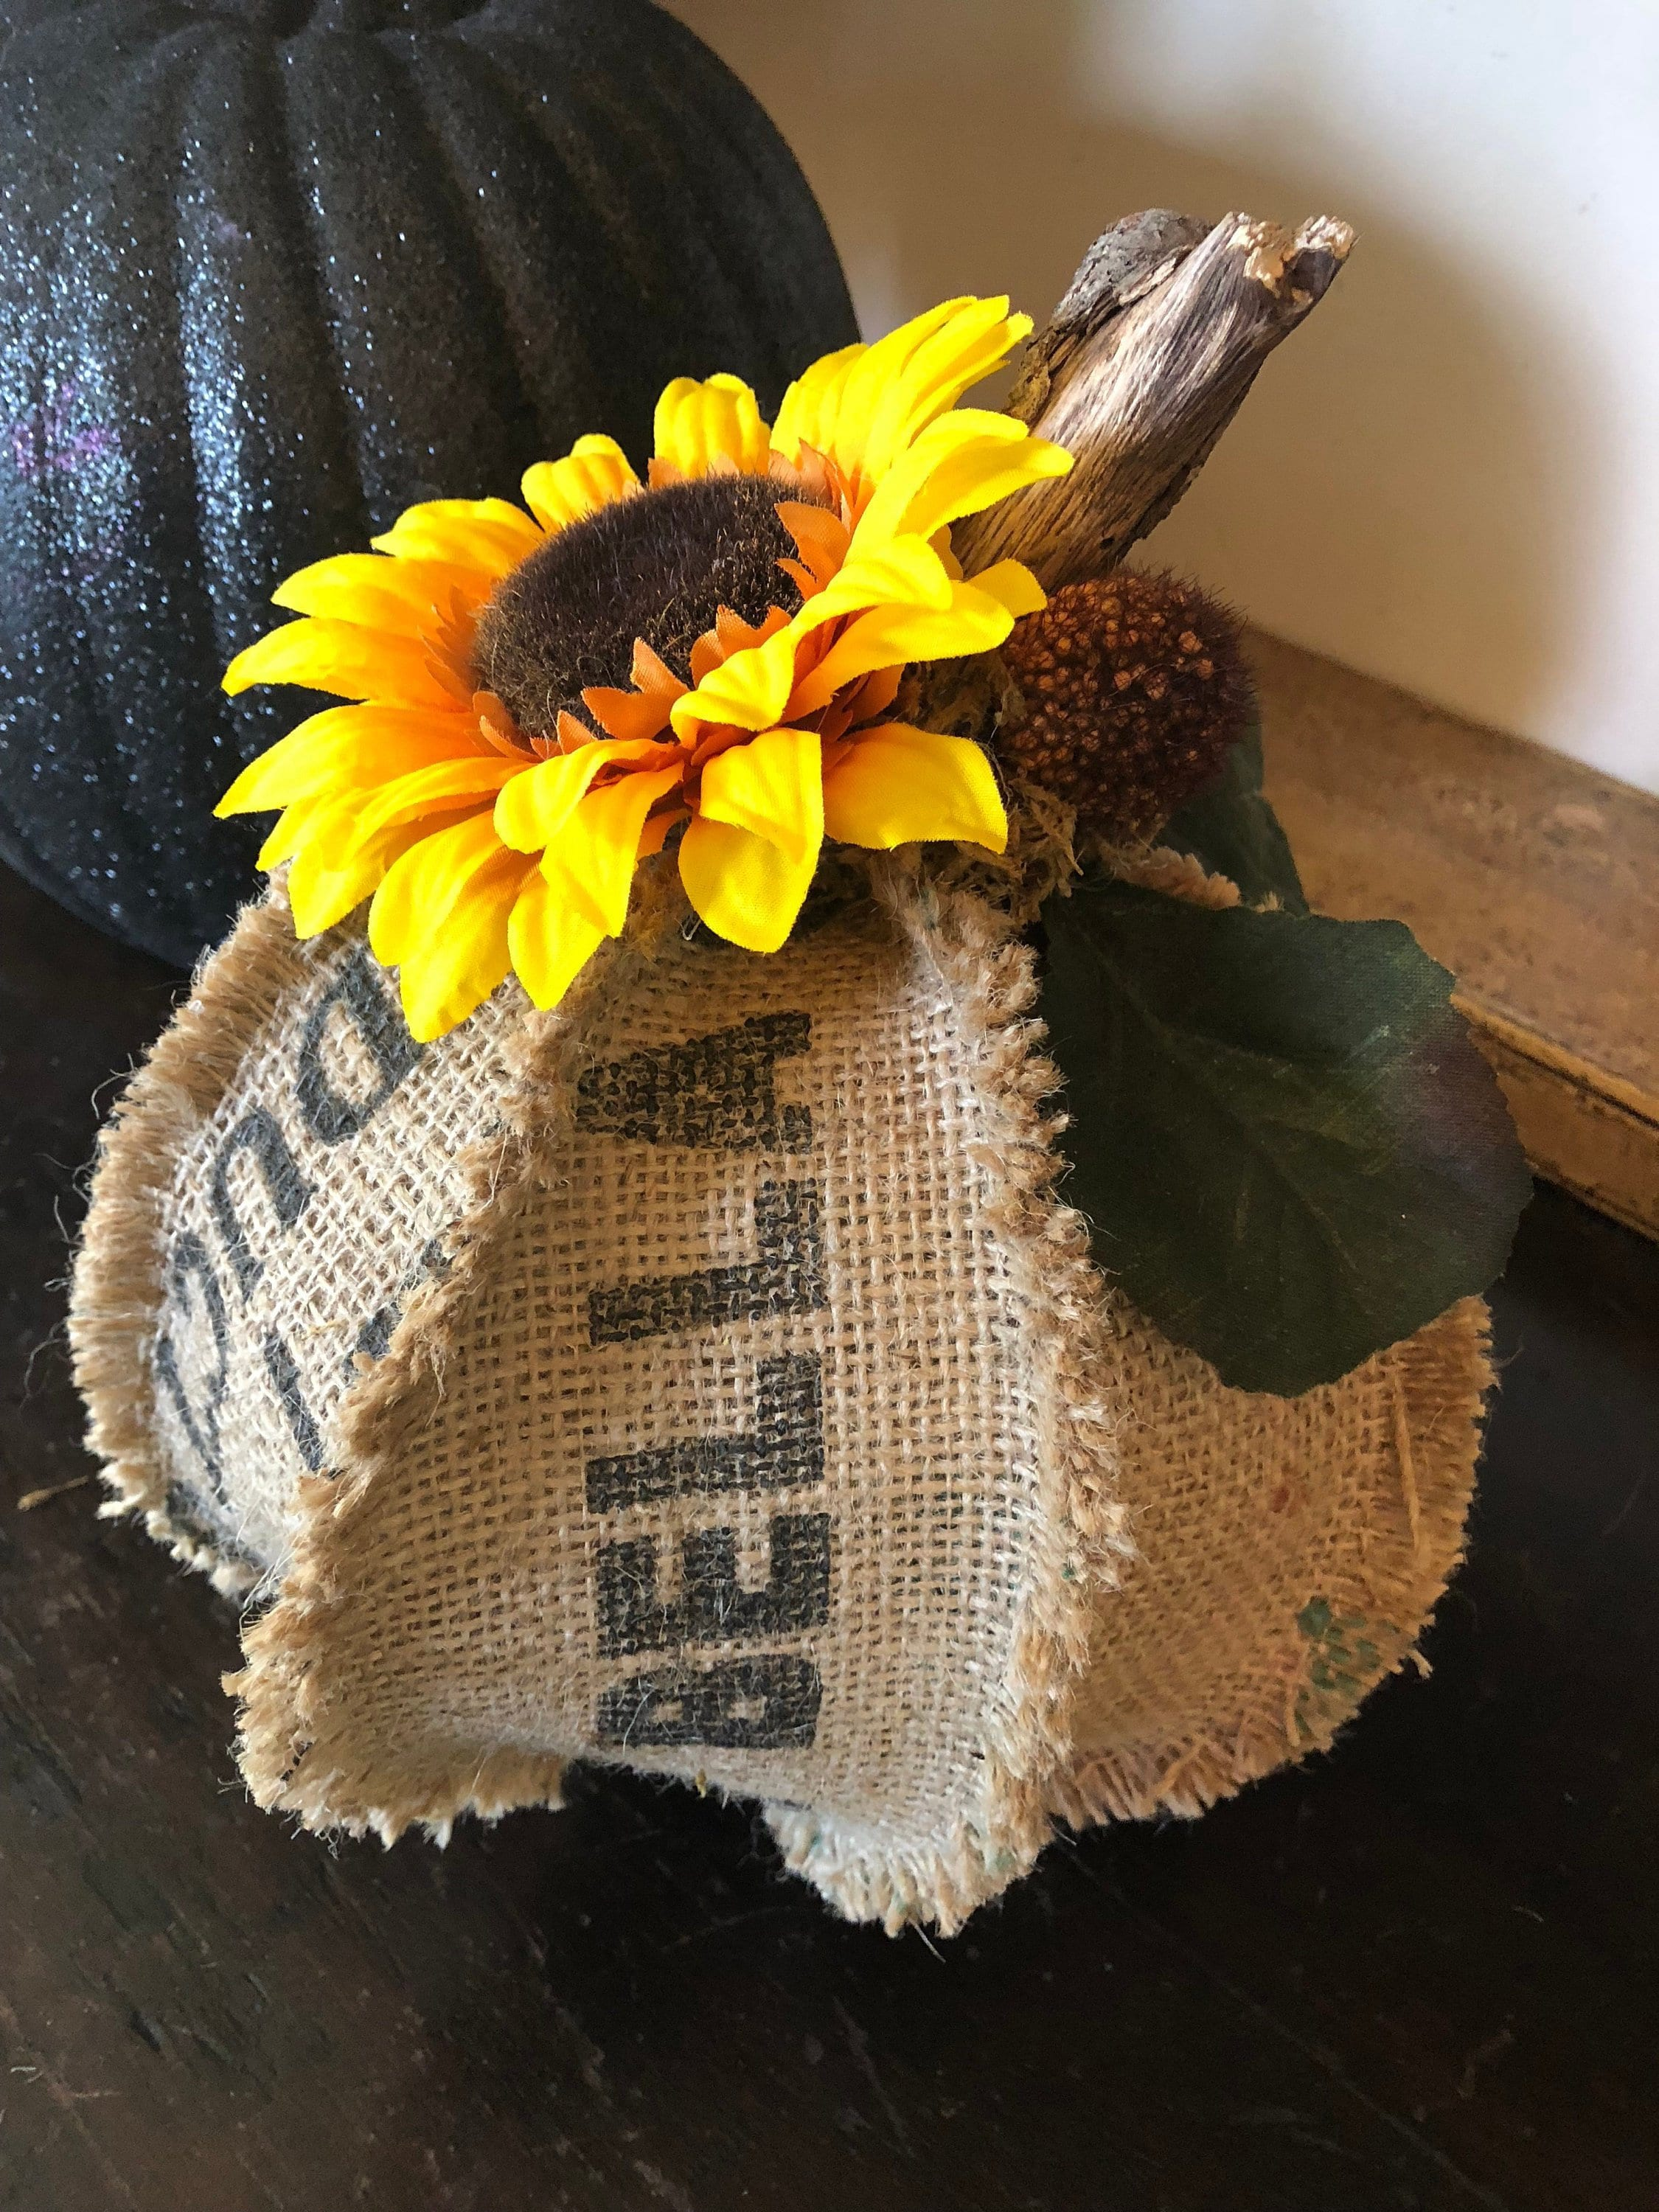 Halloween Pumpkin Fall Home Decor Autumn Decor Halloween Decorations Farmhouse Rustic Upcycled Hippie Chic Shabby Chic Burlap Pumpkin Tuscan